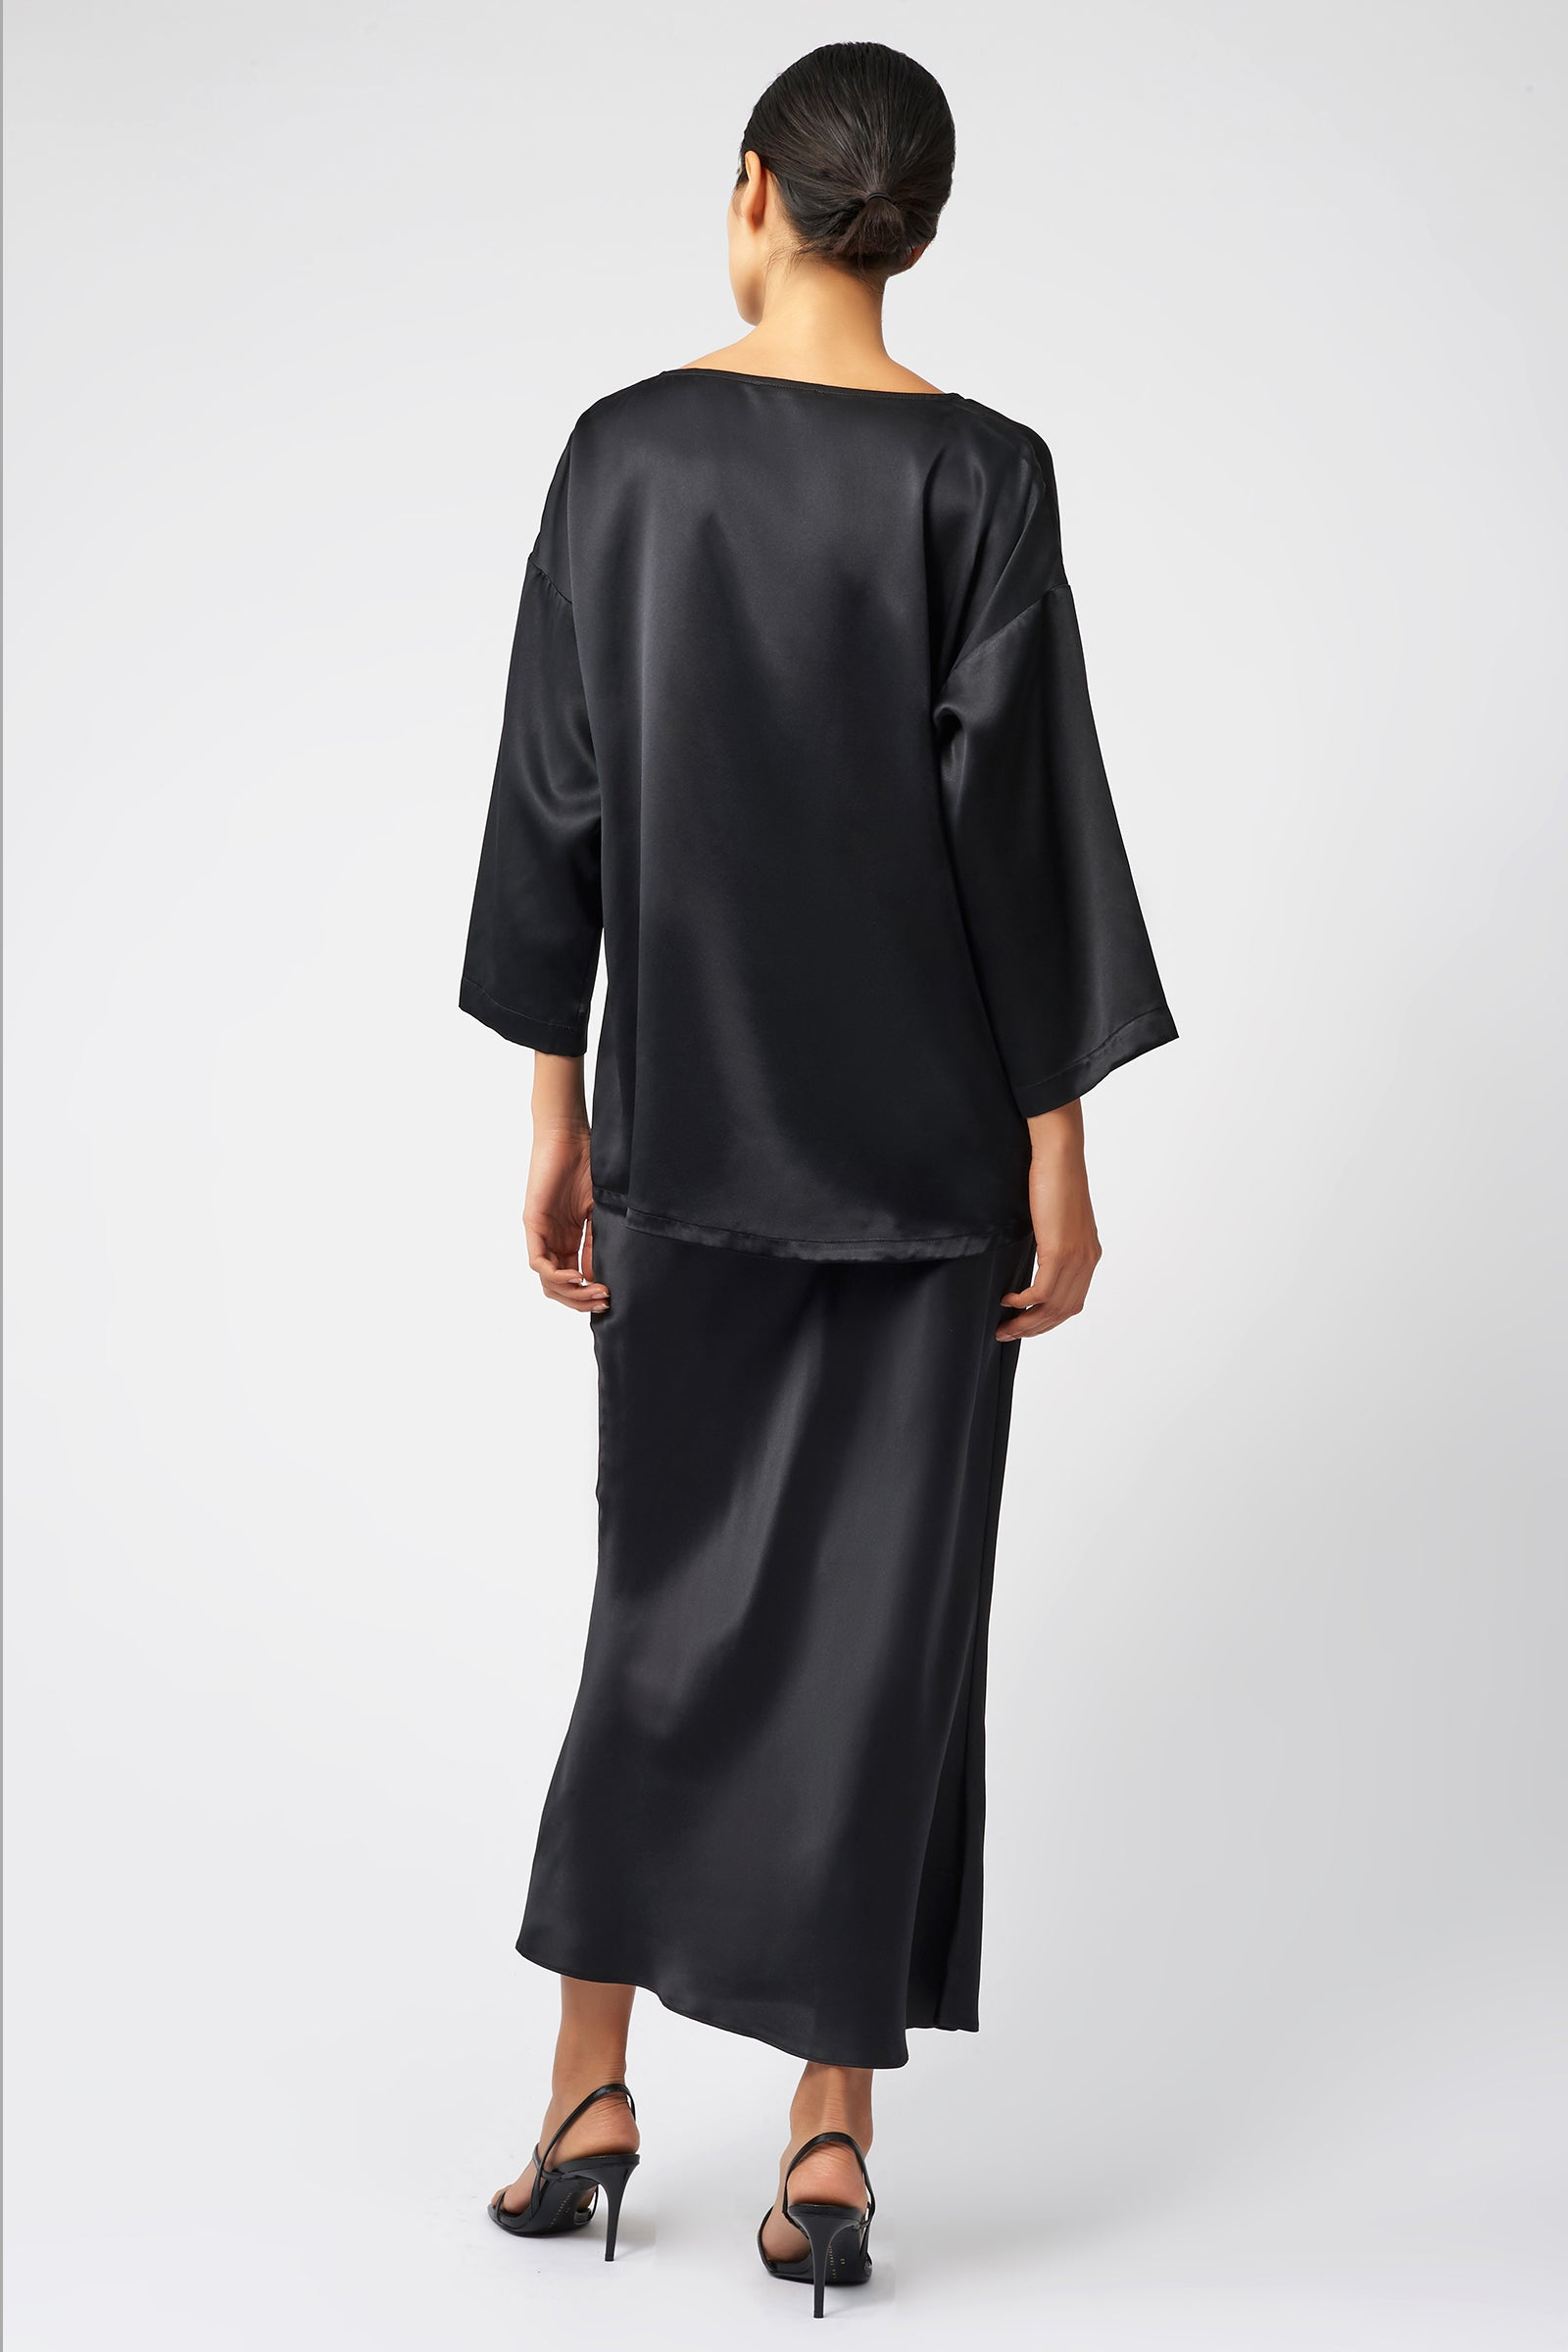 Kal Rieman Bias Silk Skirt in Black on Model Front Back View